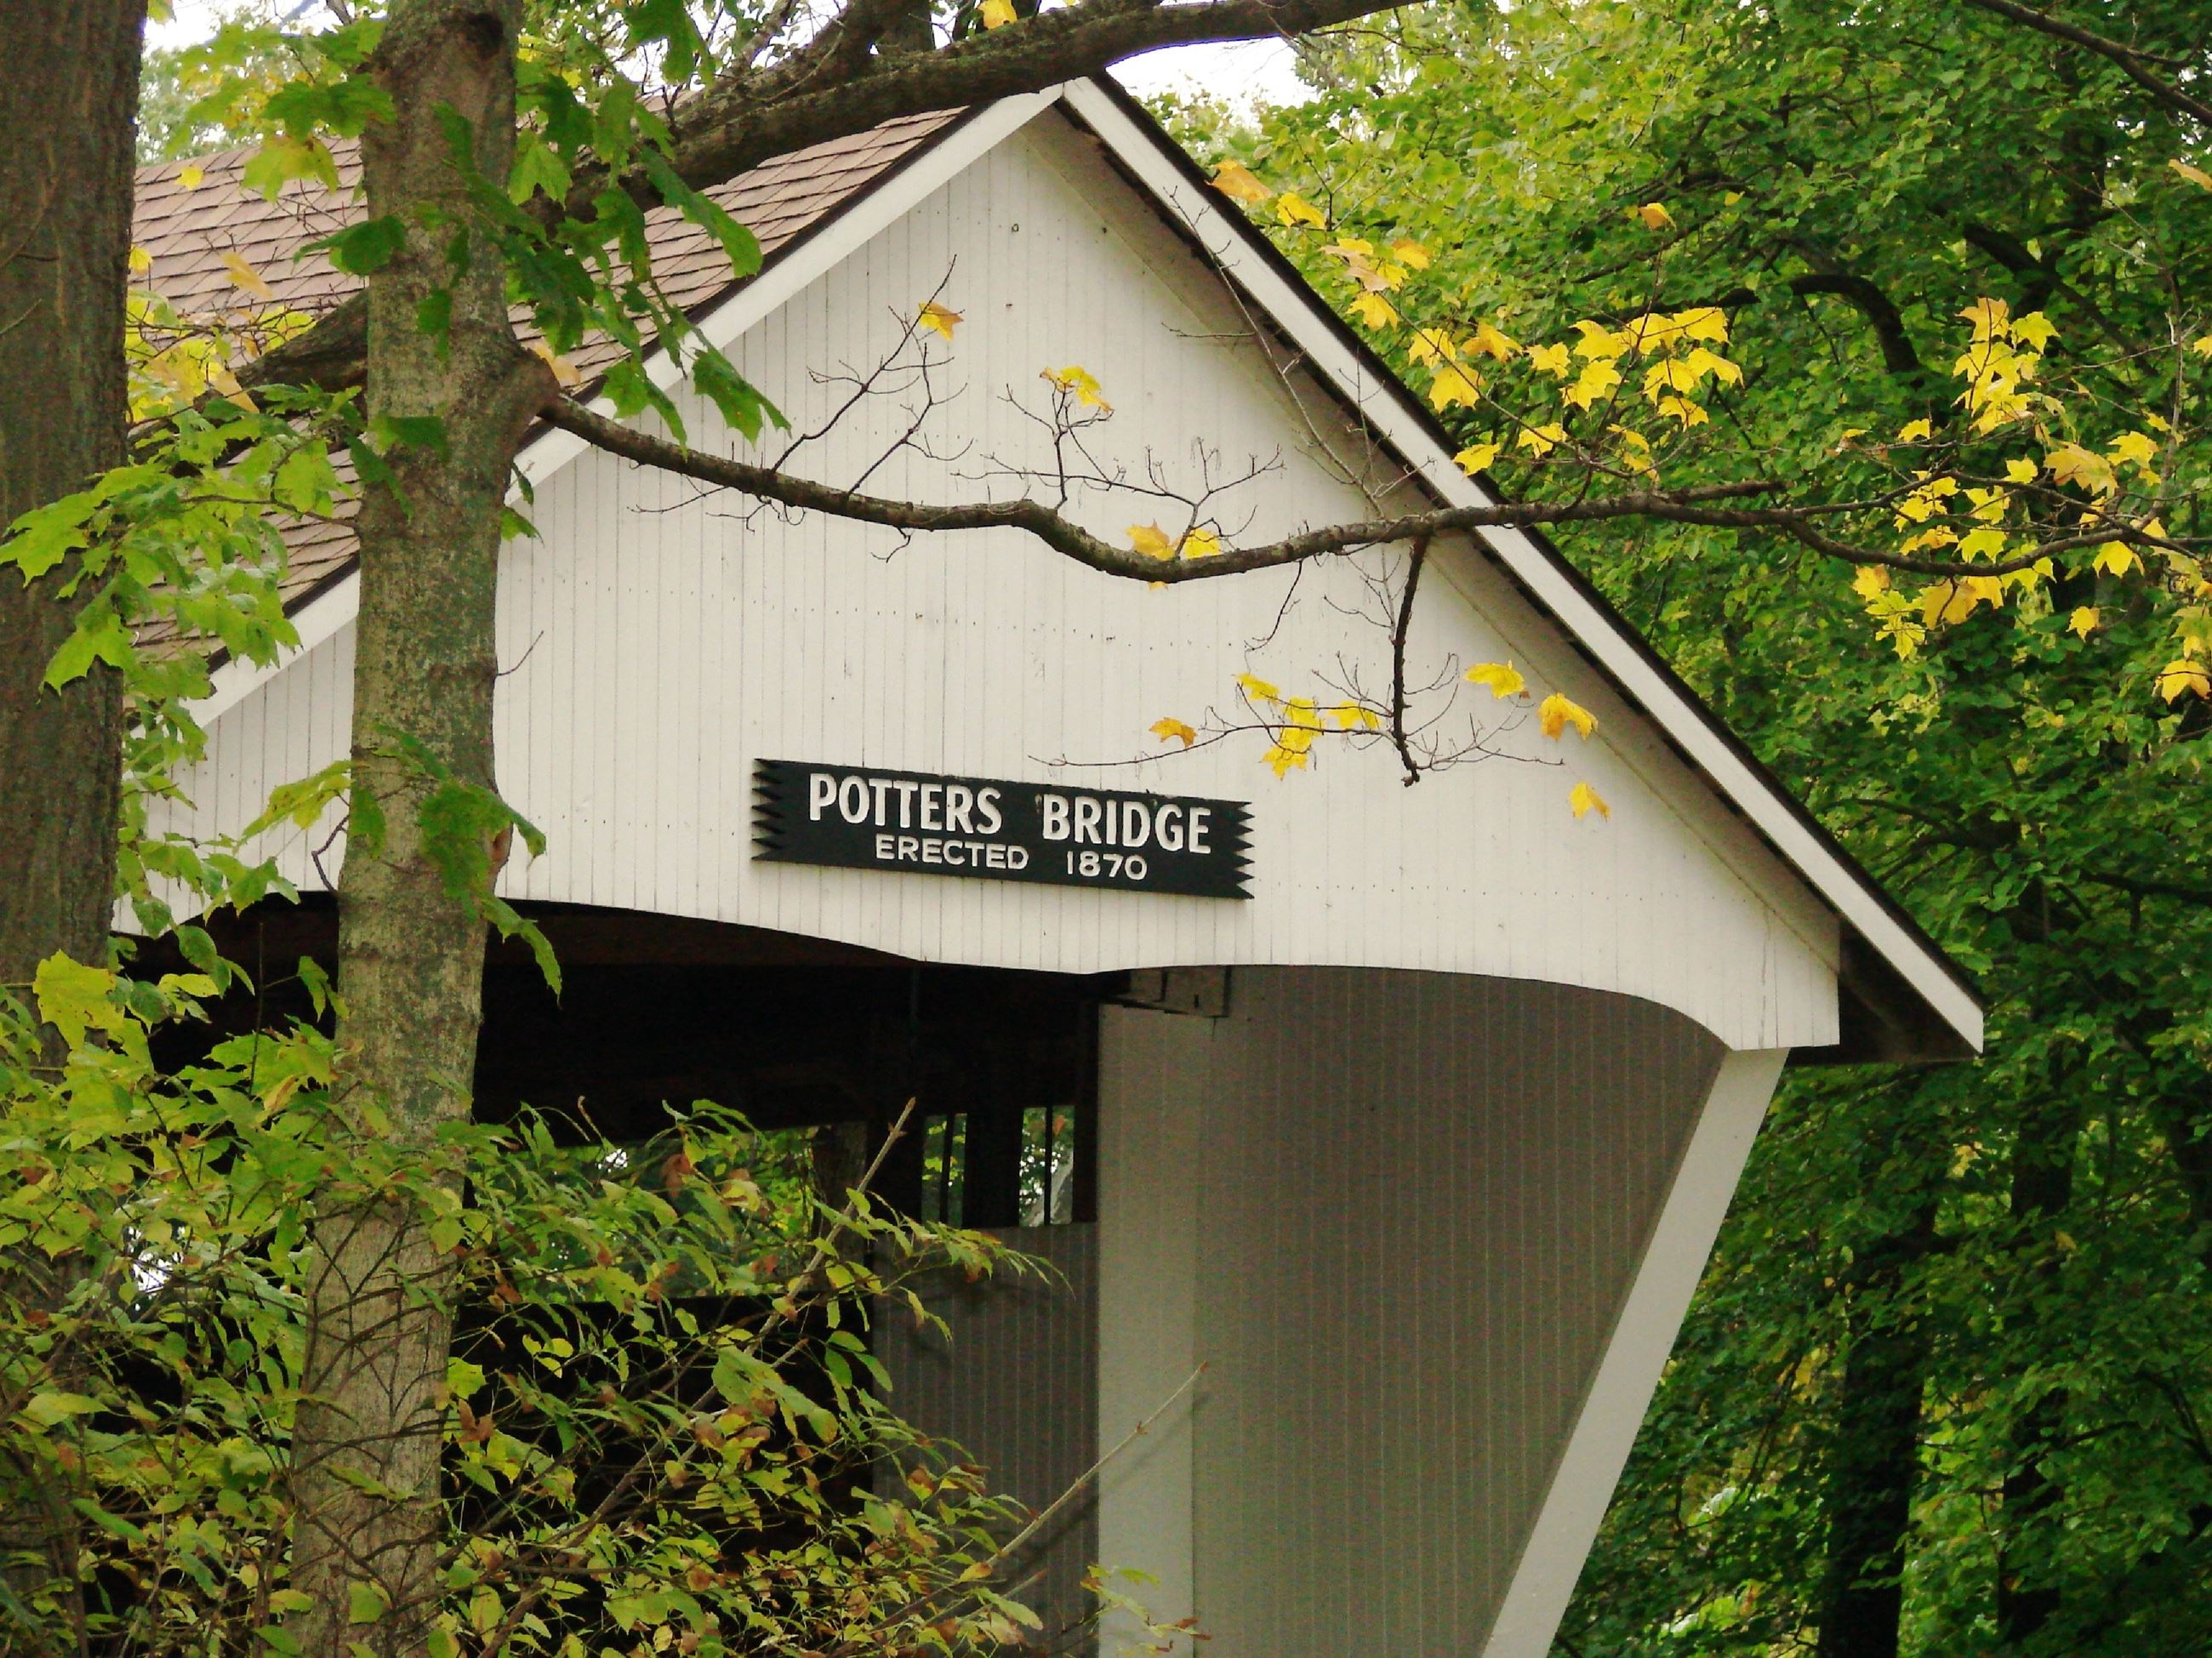 Potters Bridge